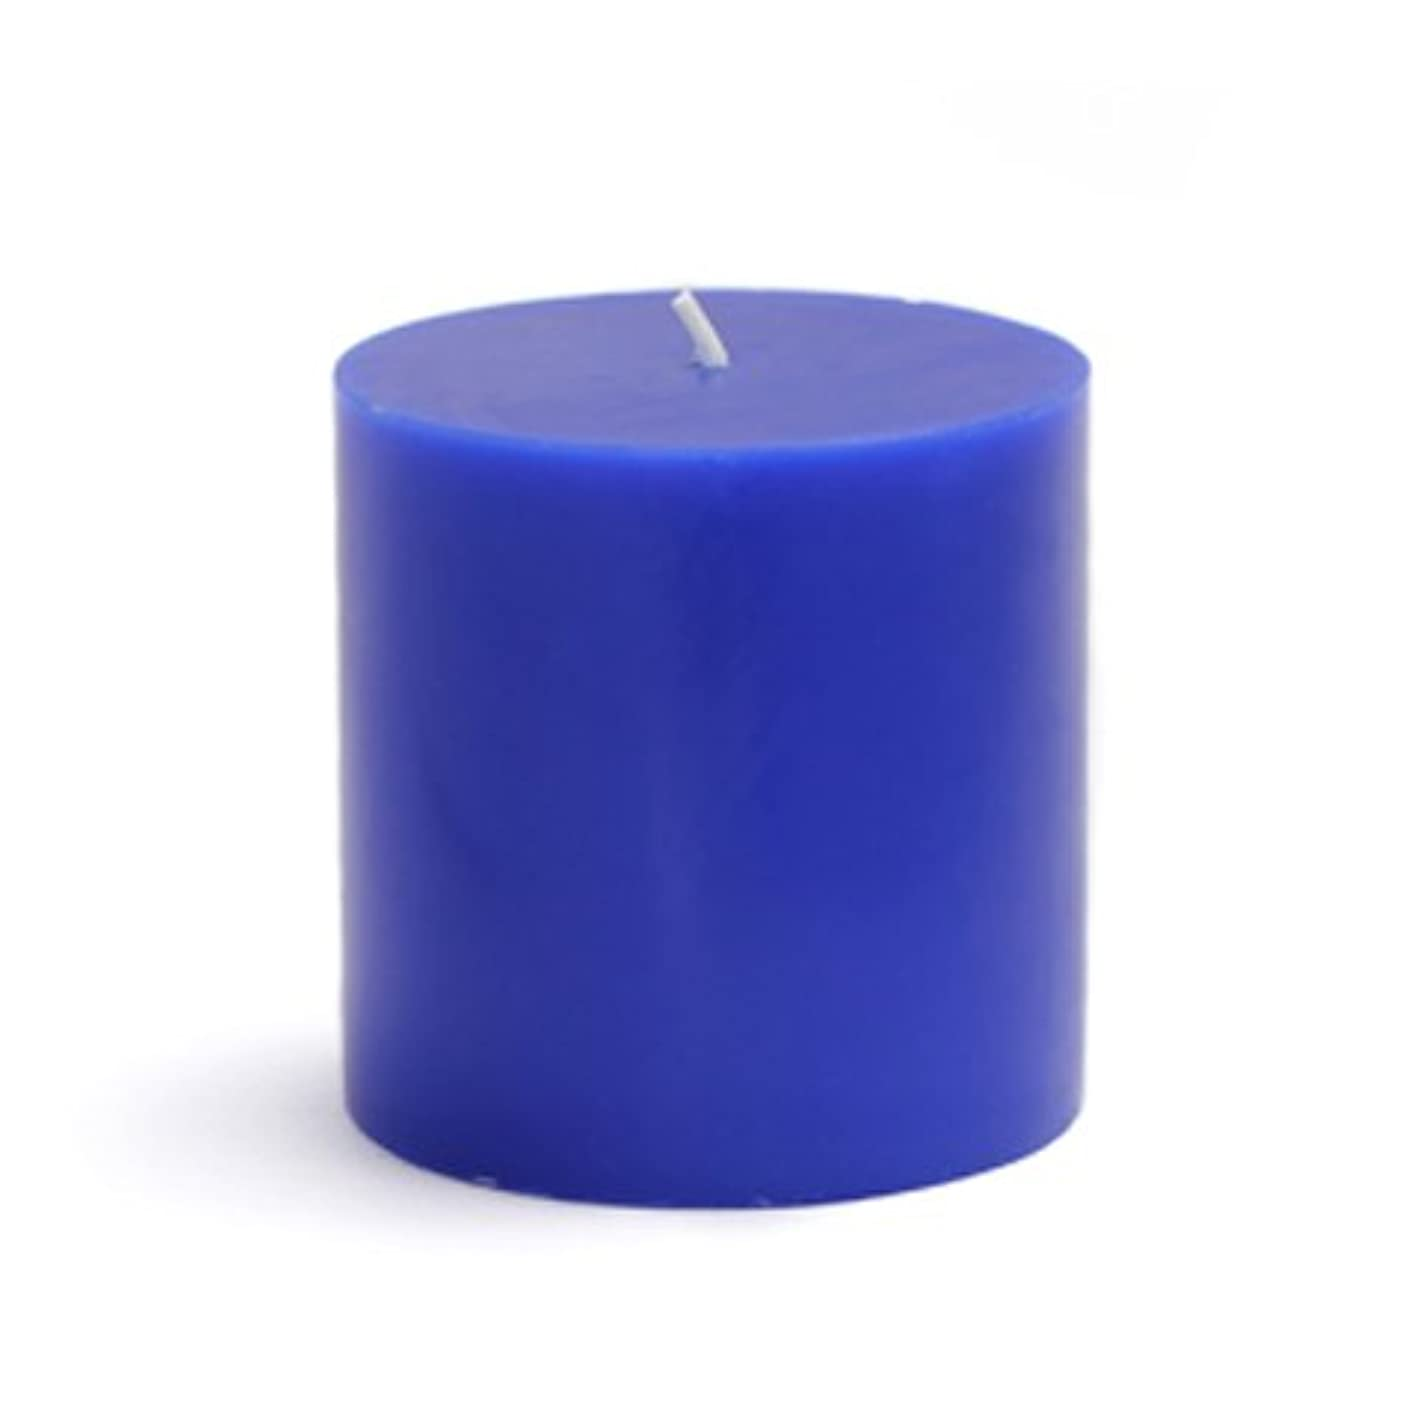 オッズバブルグラマーZest Candle CPZ-077-12 3 x 3 in. Blue Pillar Candles -12pcs-Case- Bulk